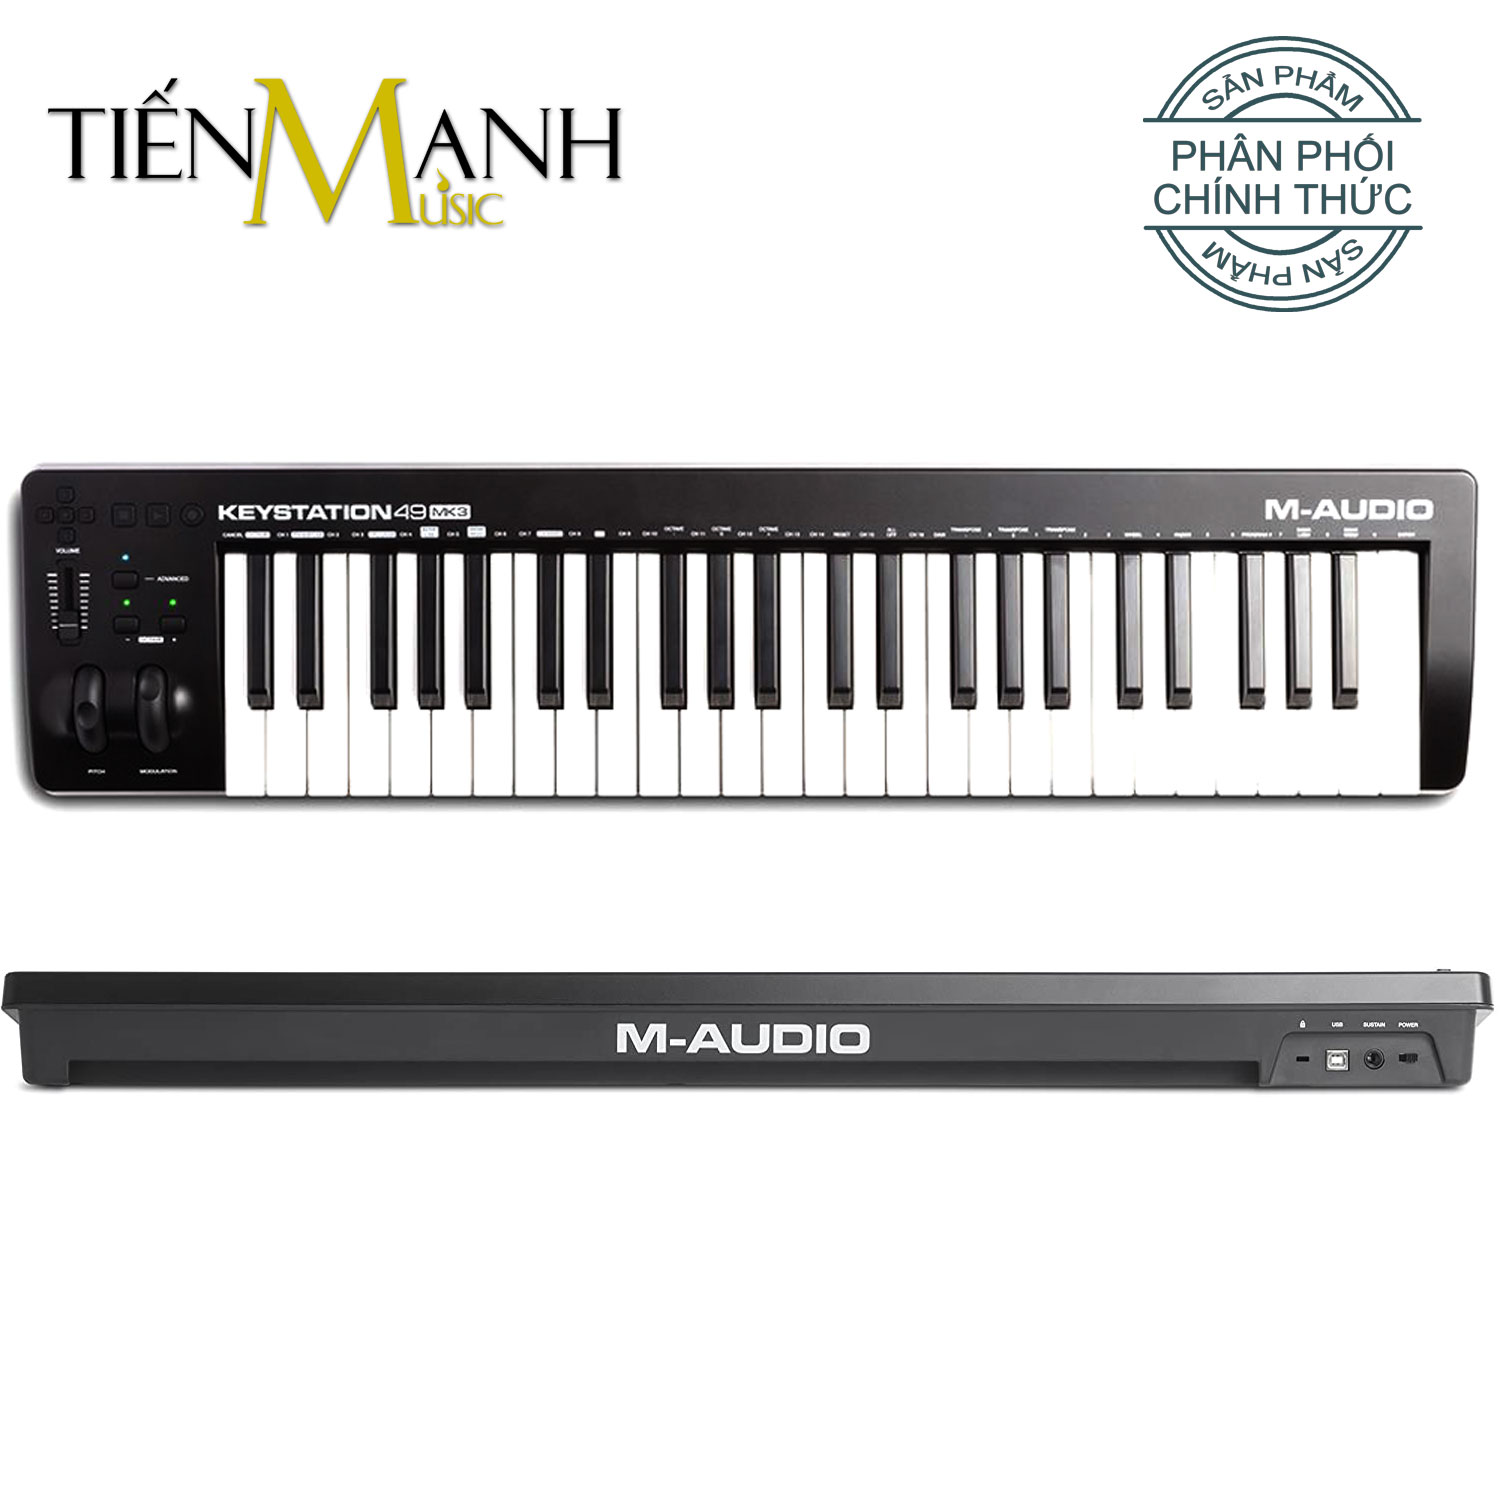 M-Audio Keystation 49 MK3 Ultra Portable USB MIDI Keyboard Controller MKIII With ProTools First